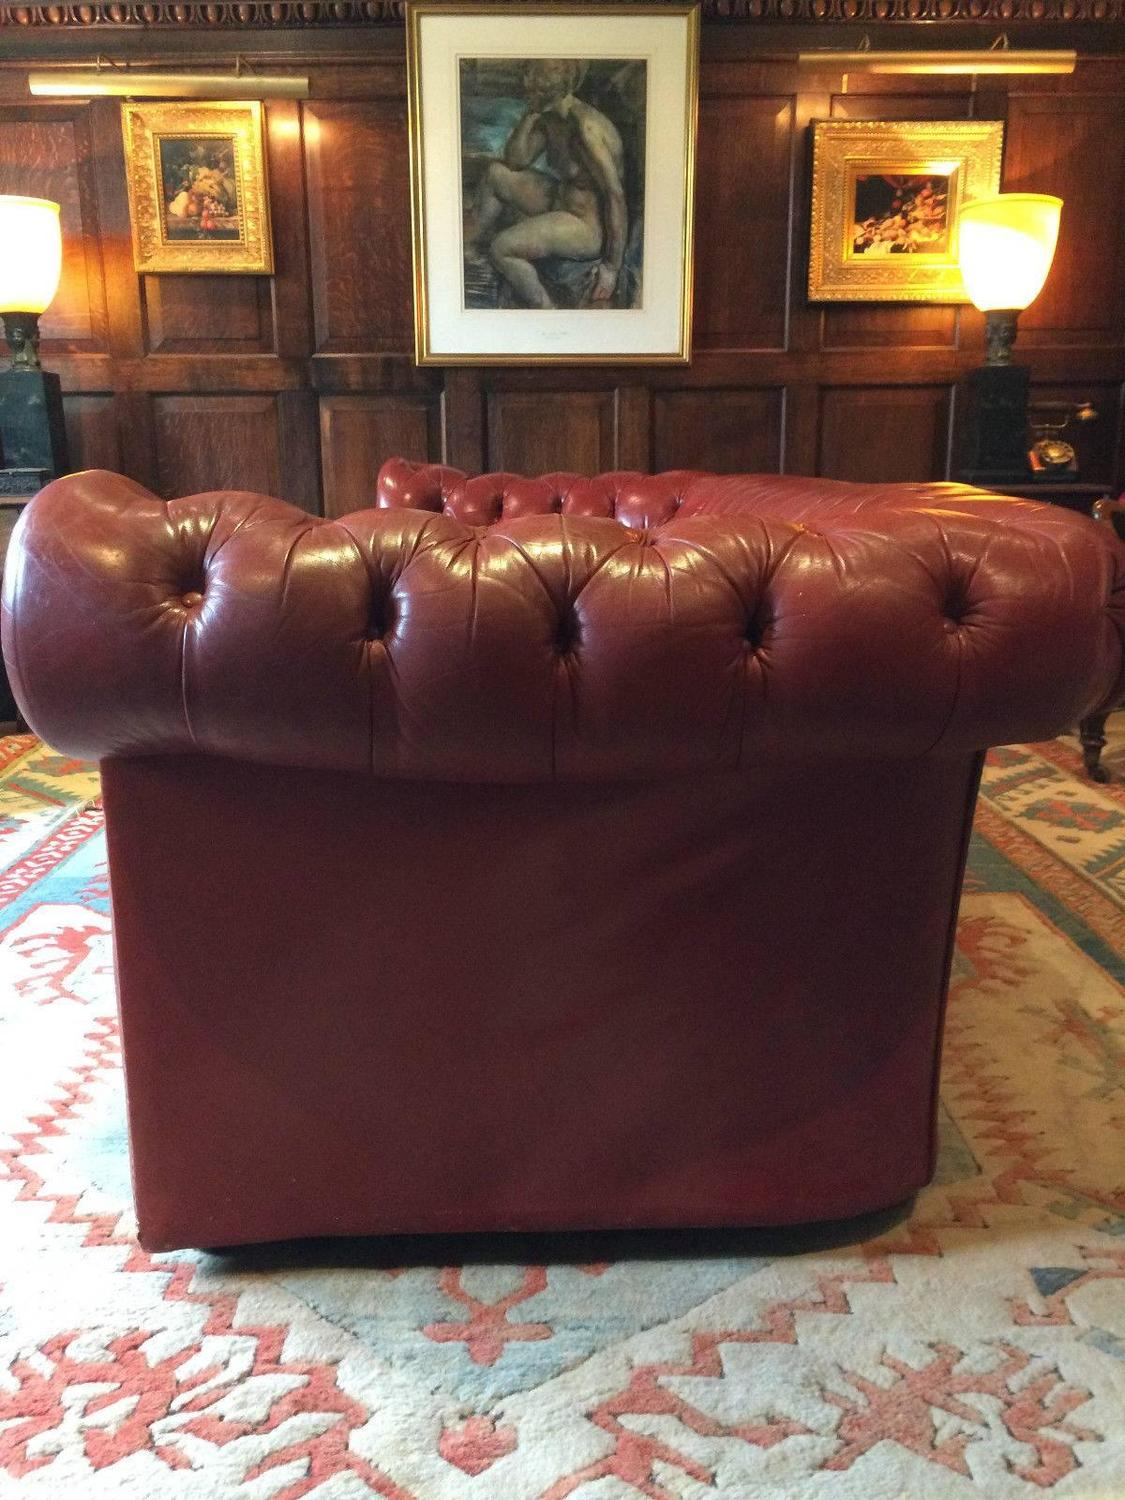 Antique style chesterfield sofa three seat settee red for Decor jewelry chesterfield